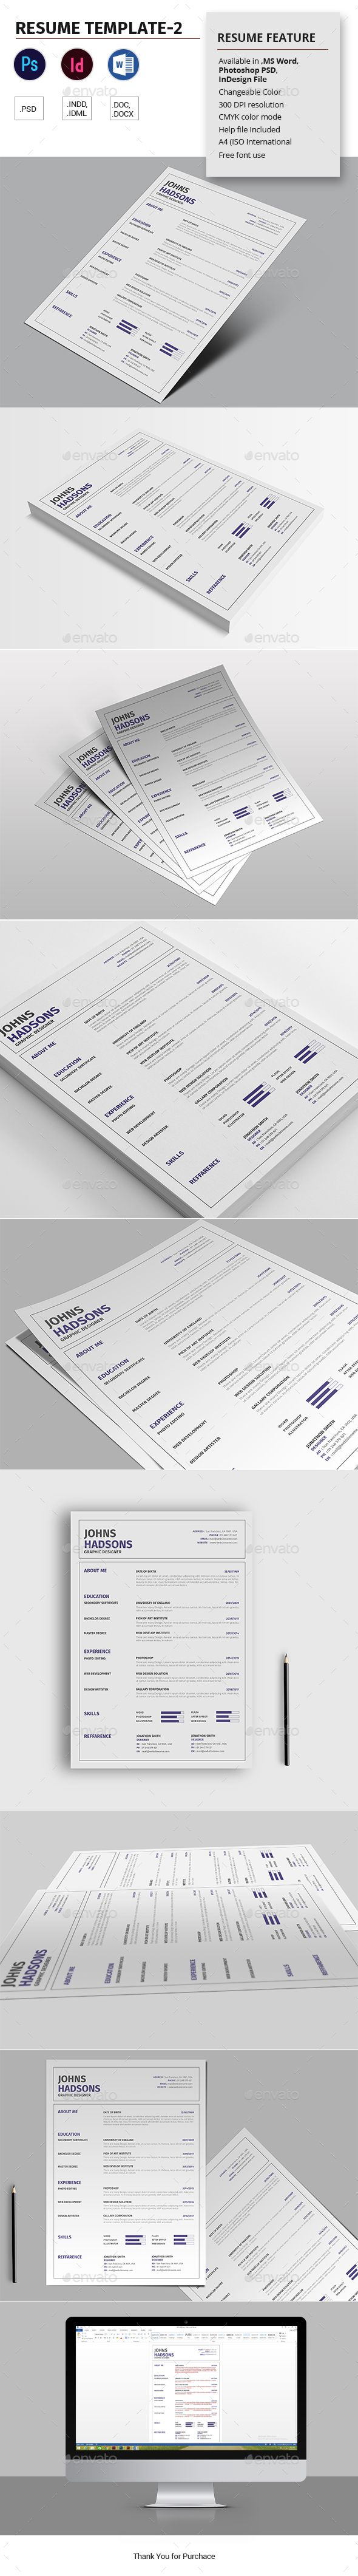 What Font To Use On Resume Resume Template2  Template Font Logo And Typography Design